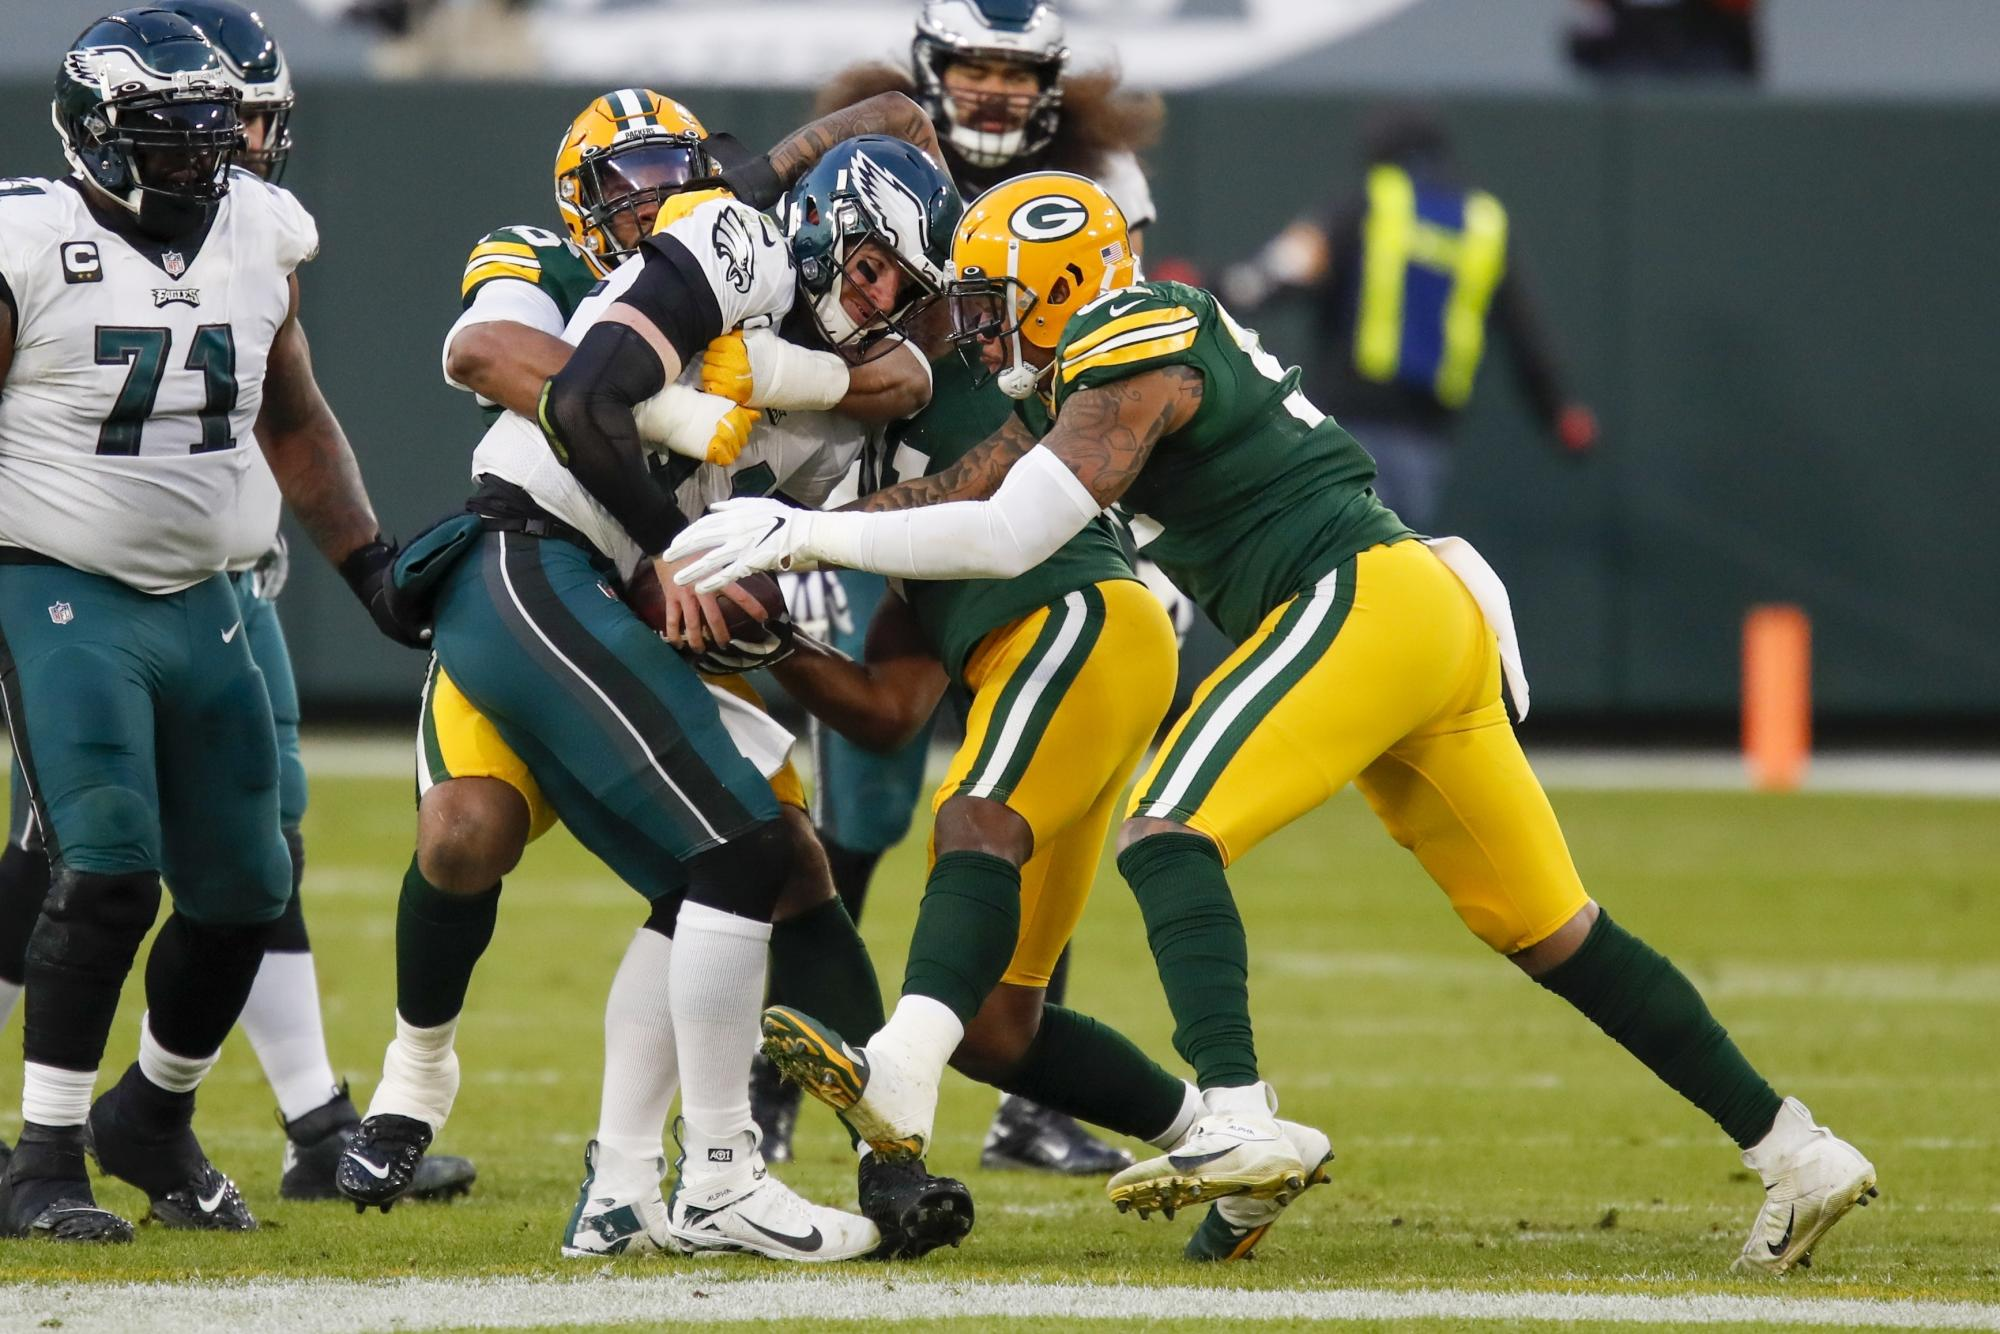 au.finance.yahoo.com: Eagles finally bench Carson Wentz in the middle of another bad game, turn to Jalen Hurts